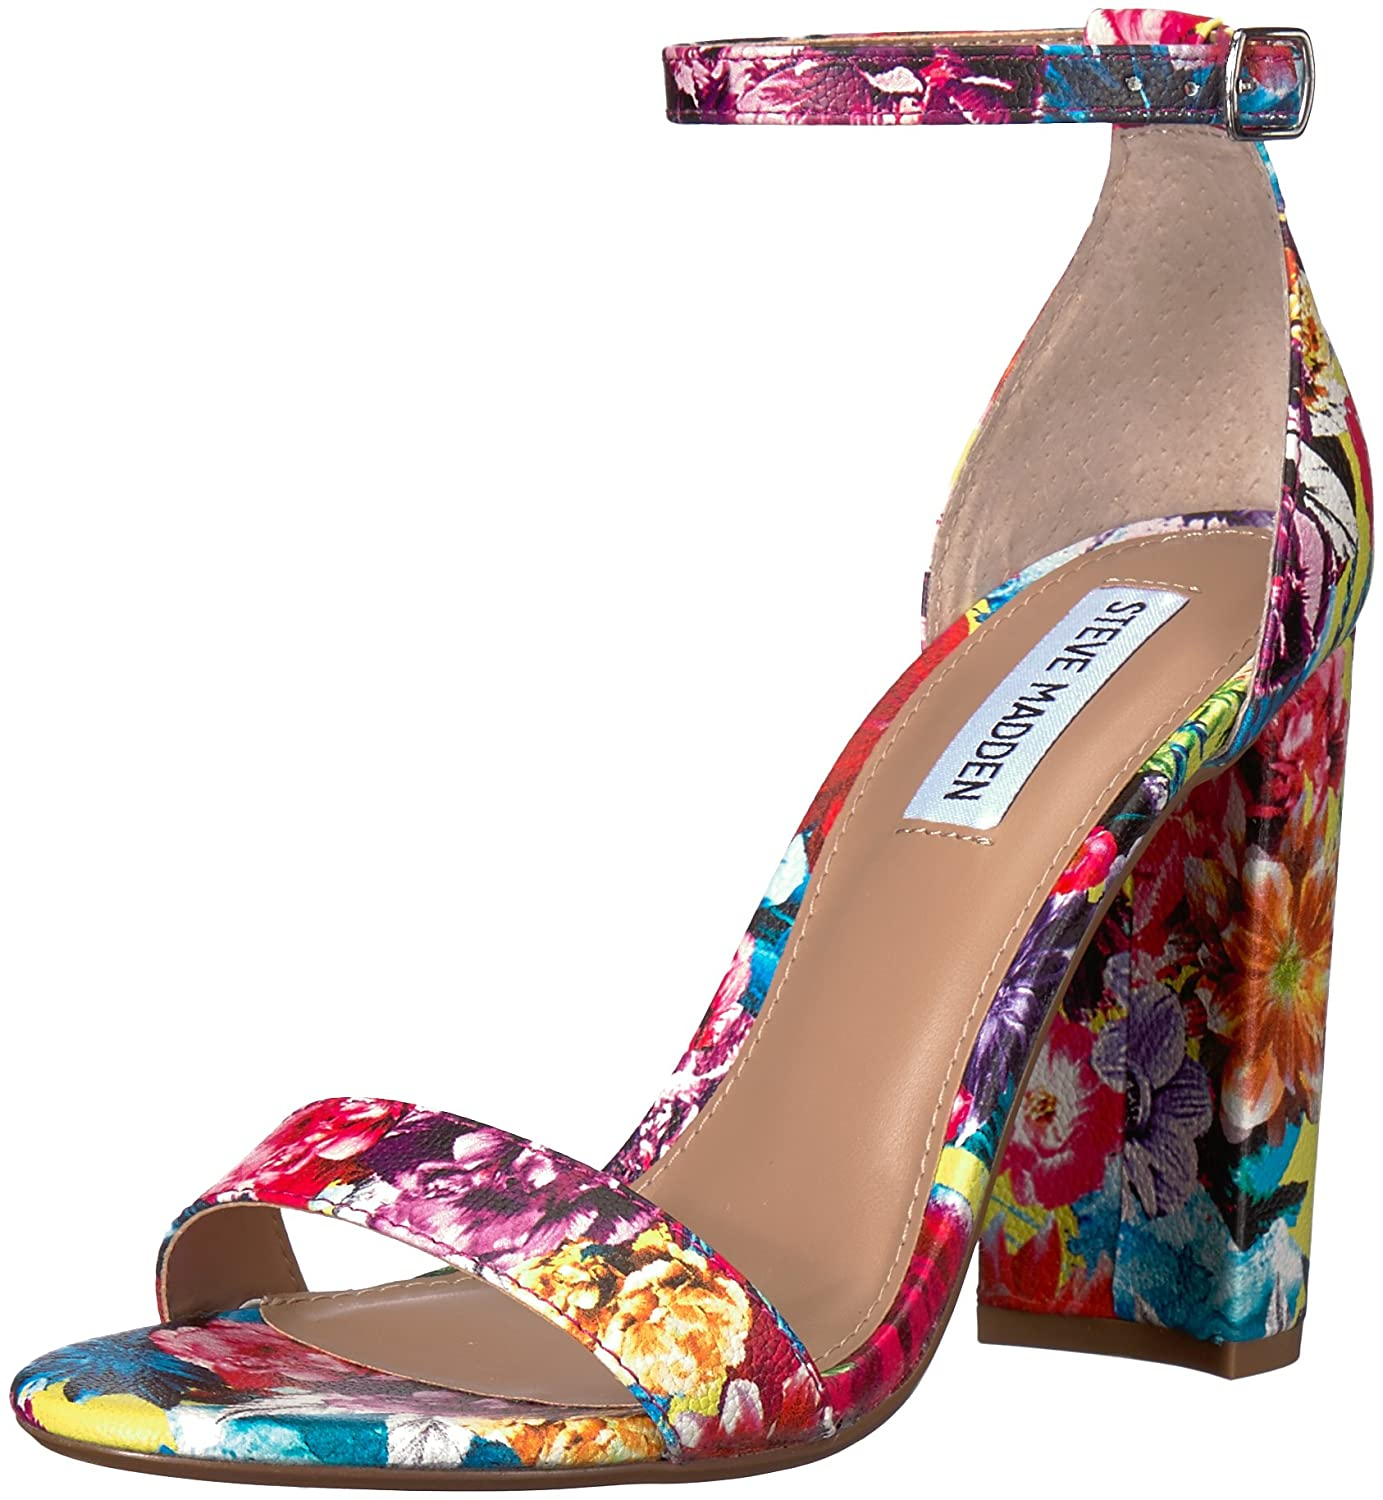 Steve Madden Womens Carrson Open Toe Special Occasion Suede Ankle Strap Sandals B078NMQRYD 10 B(M) US|Flower Multi Flower Multi 10 B(M) US